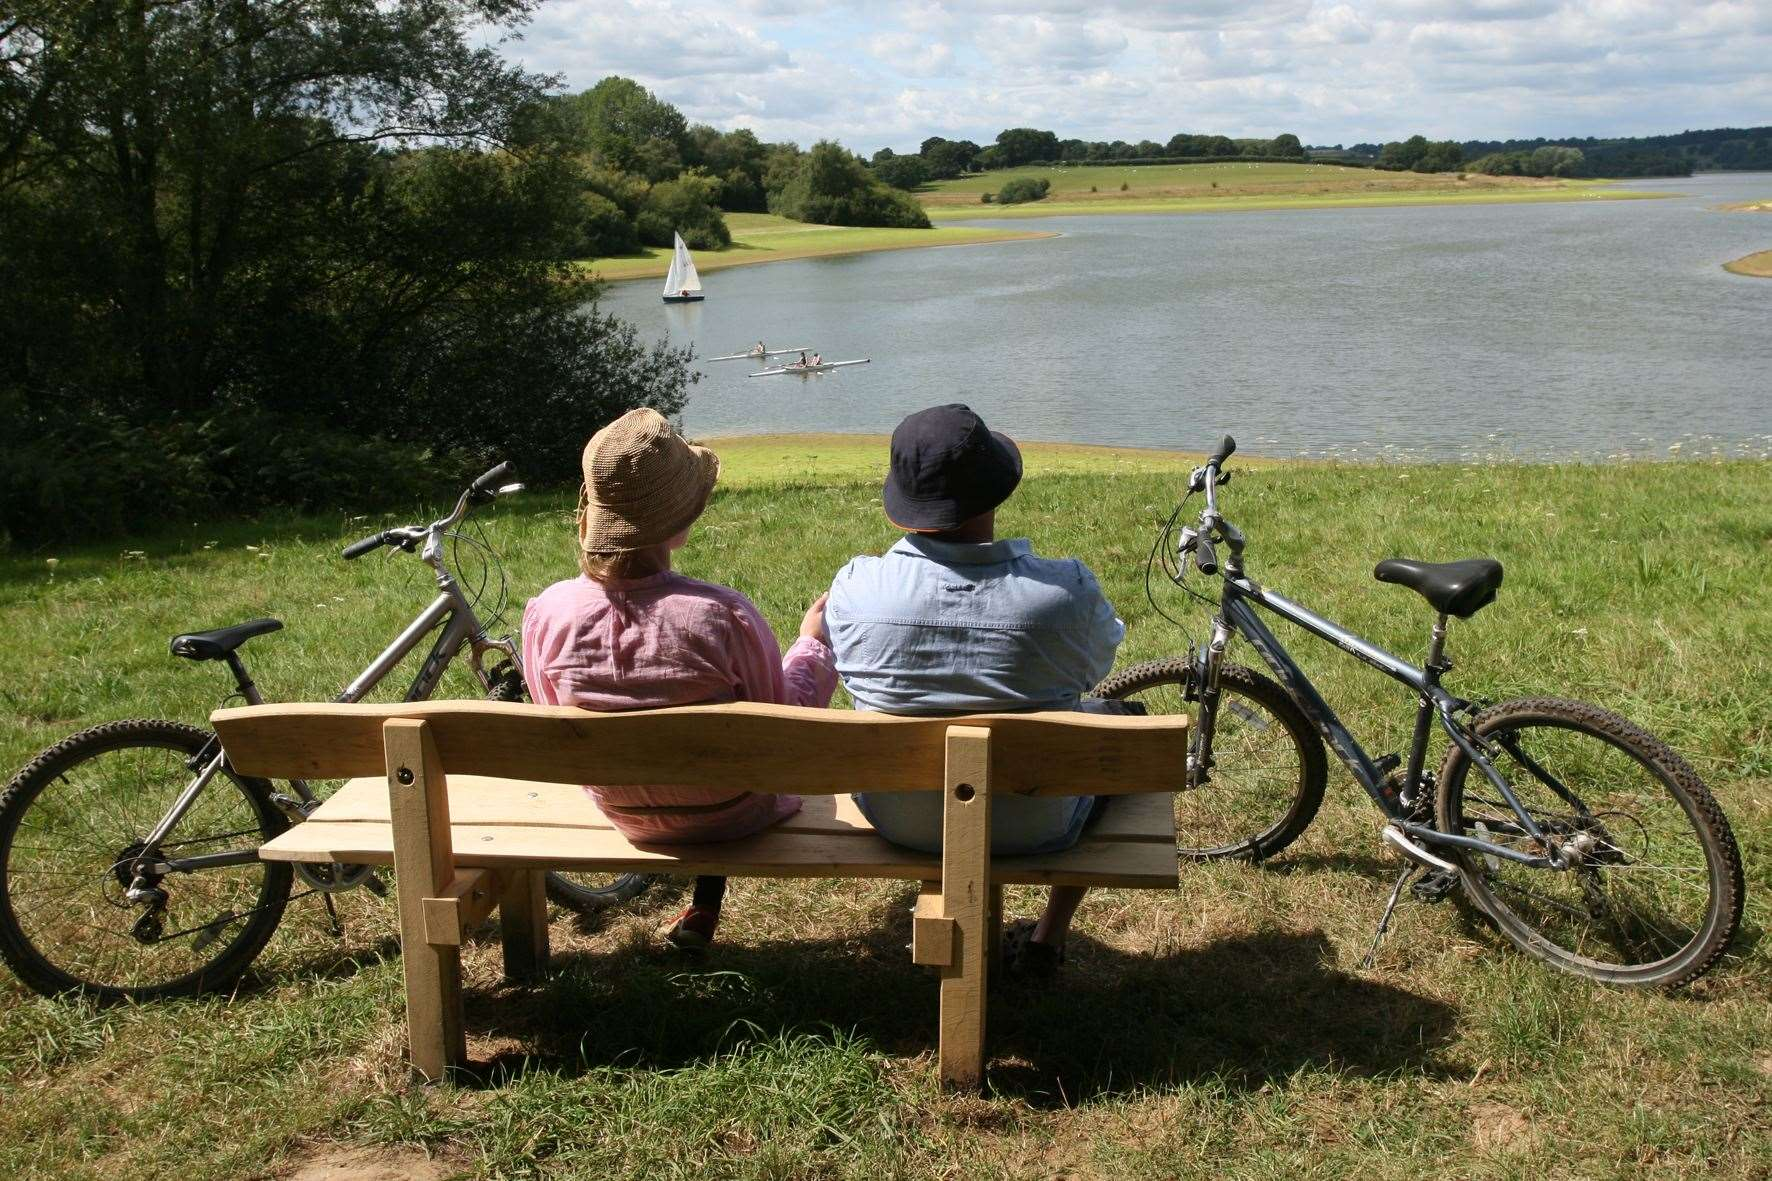 Bewl Water offers walking and cycling routes for visitors